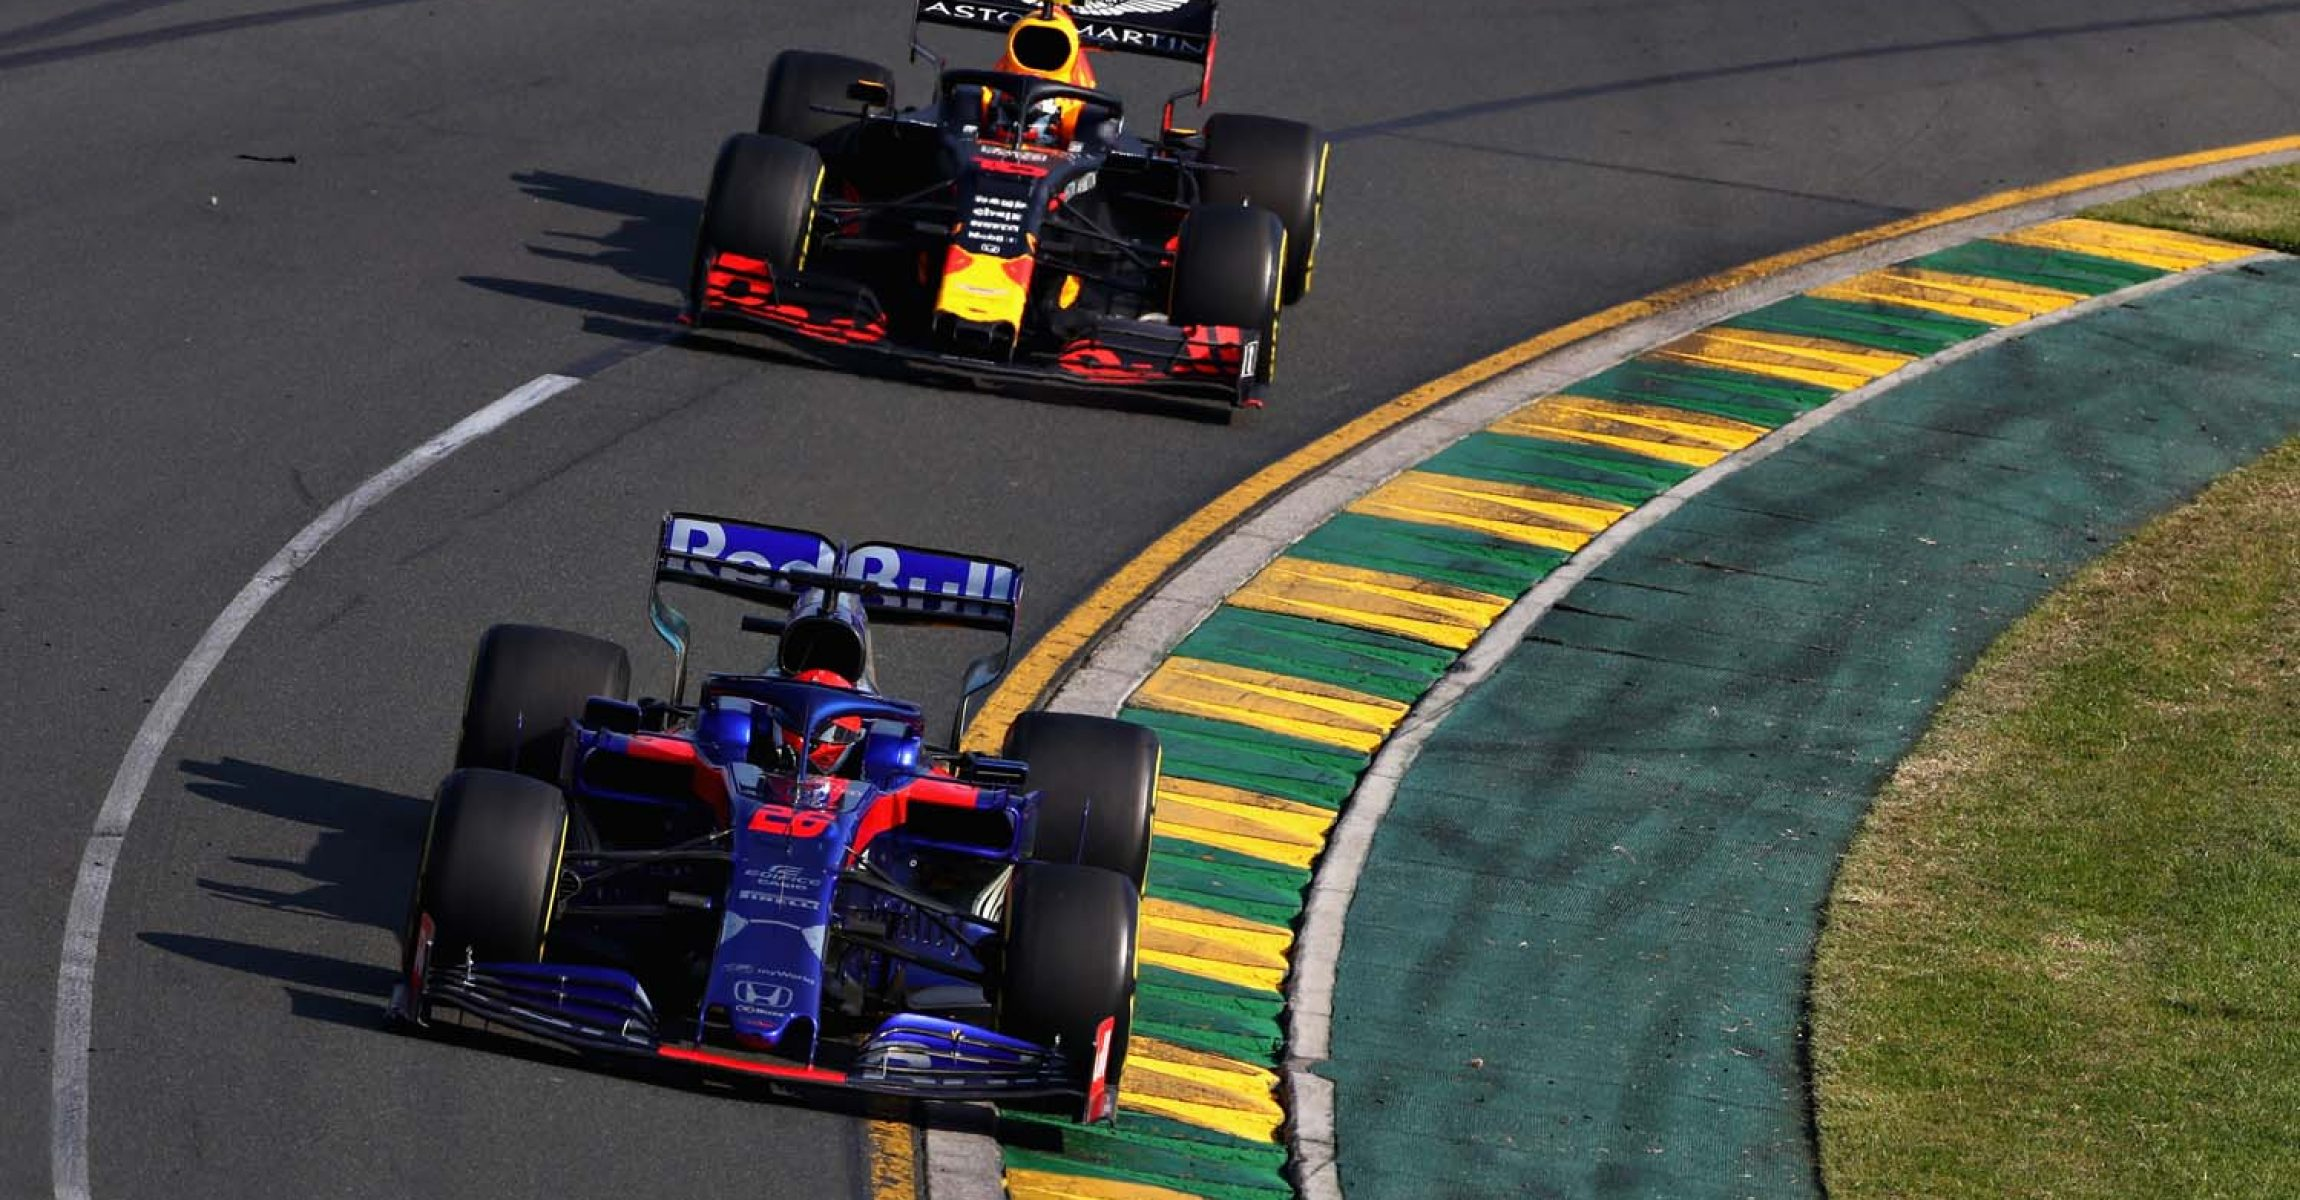 MELBOURNE, AUSTRALIA - MARCH 17: Daniil Kvyat driving the (26) Scuderia Toro Rosso STR14 Honda leads Pierre Gasly of France driving the (10) Aston Martin Red Bull Racing RB15 on track during the F1 Grand Prix of Australia at Melbourne Grand Prix Circuit on March 17, 2019 in Melbourne, Australia. (Photo by Mark Thompson/Getty Images) // Getty Images / Red Bull Content Pool // AP-1YRC7C7P11W11 // Usage for editorial use only // Please go to www.redbullcontentpool.com for further information. //